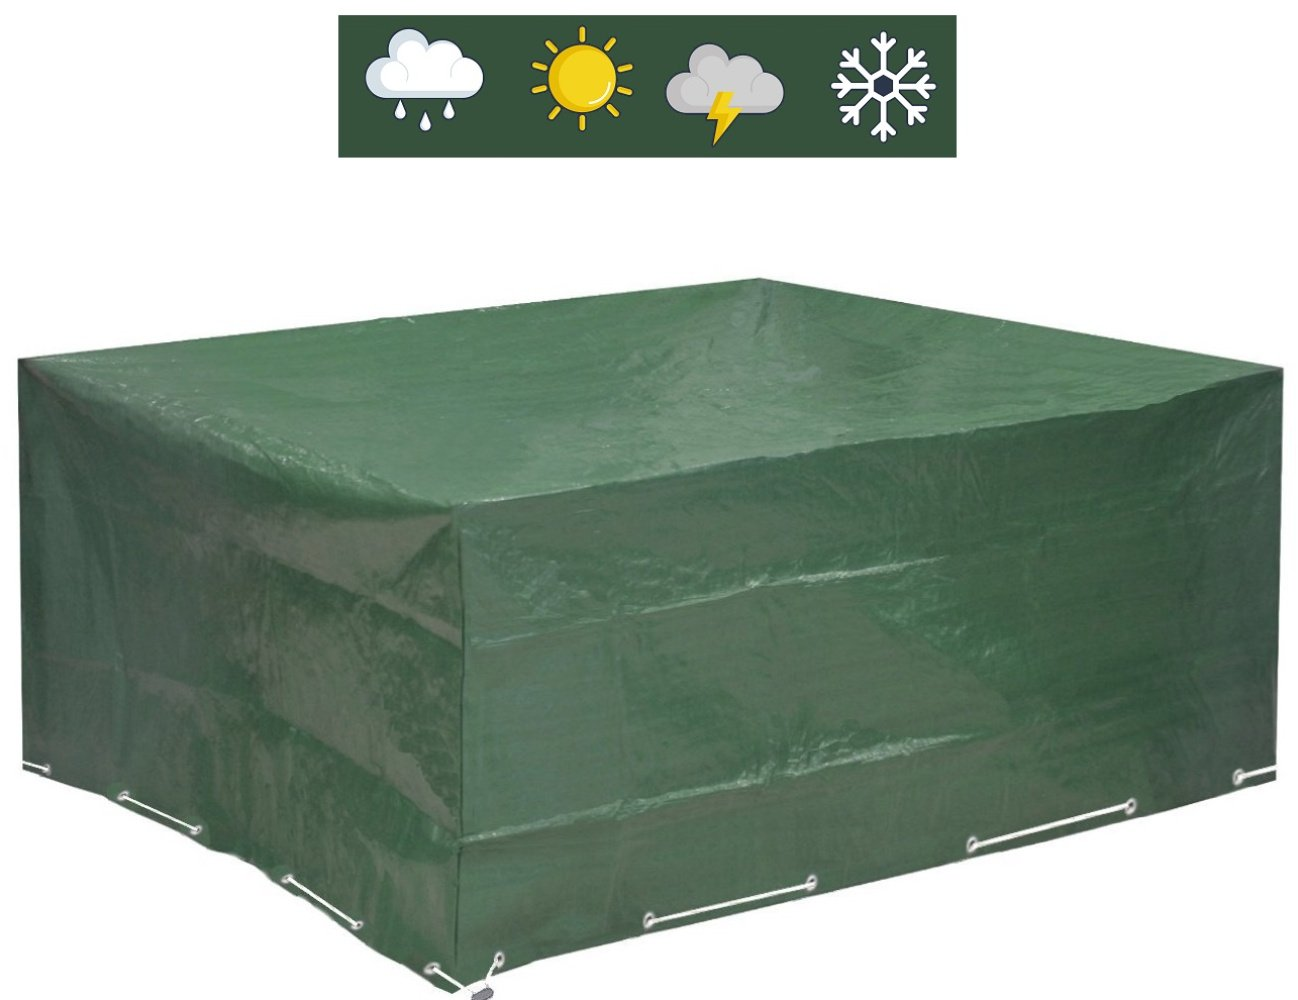 Garden Furniture Covers 250x210x90 - COMPARISON WINNER 2018* - Patio Cover Waterproof Protection against Wind and Weather - Protective Garden Furniture Cover for square Garden Tables and Protective Cover for Garden Lounge by GloryTec